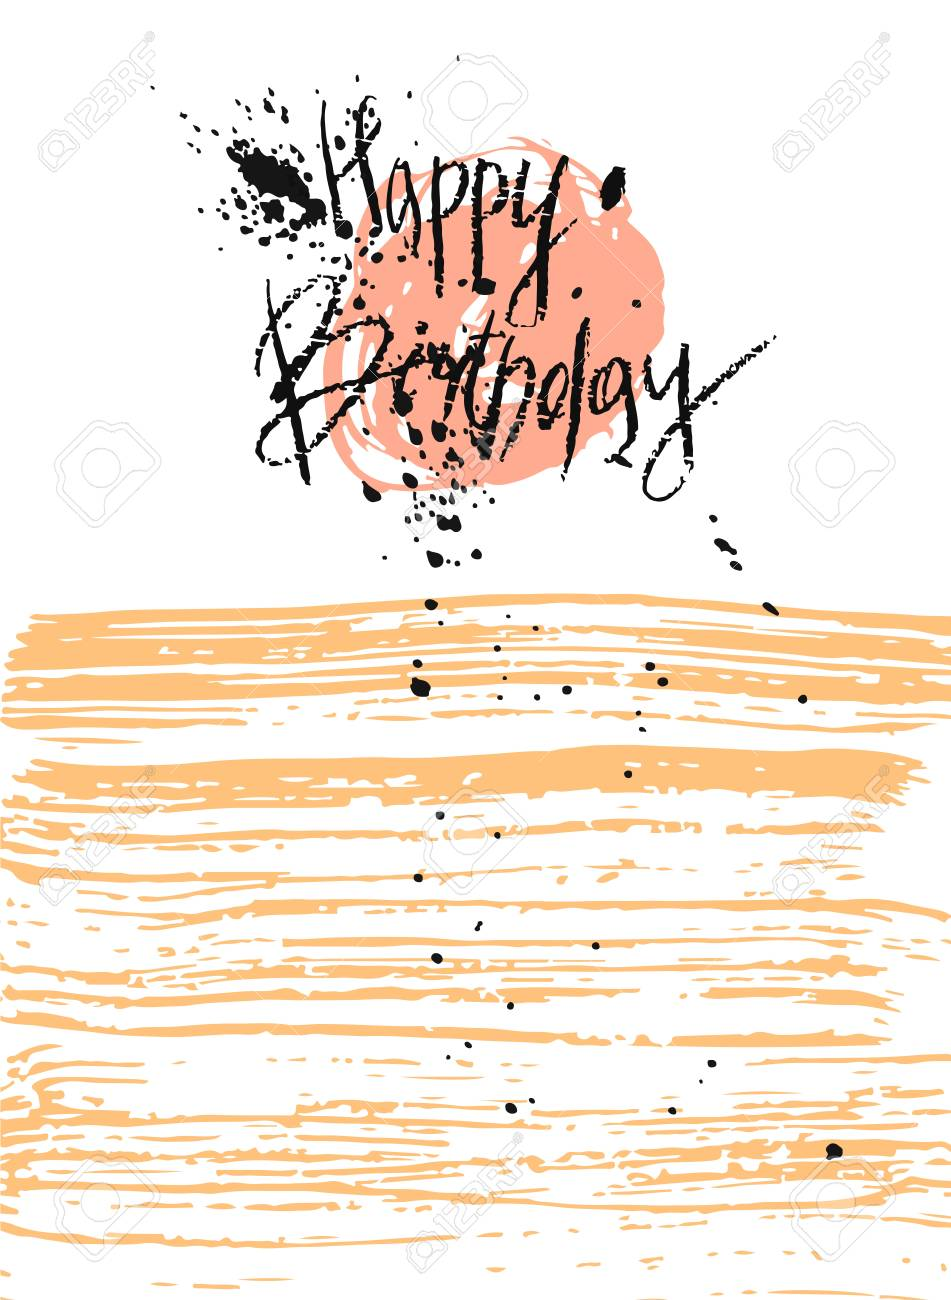 Hand draw vector textured happy birthday cardrthday cardbirthday hand draw vector textured happy birthday cardrthday cardbirthday greetingbirthday quote kristyandbryce Image collections